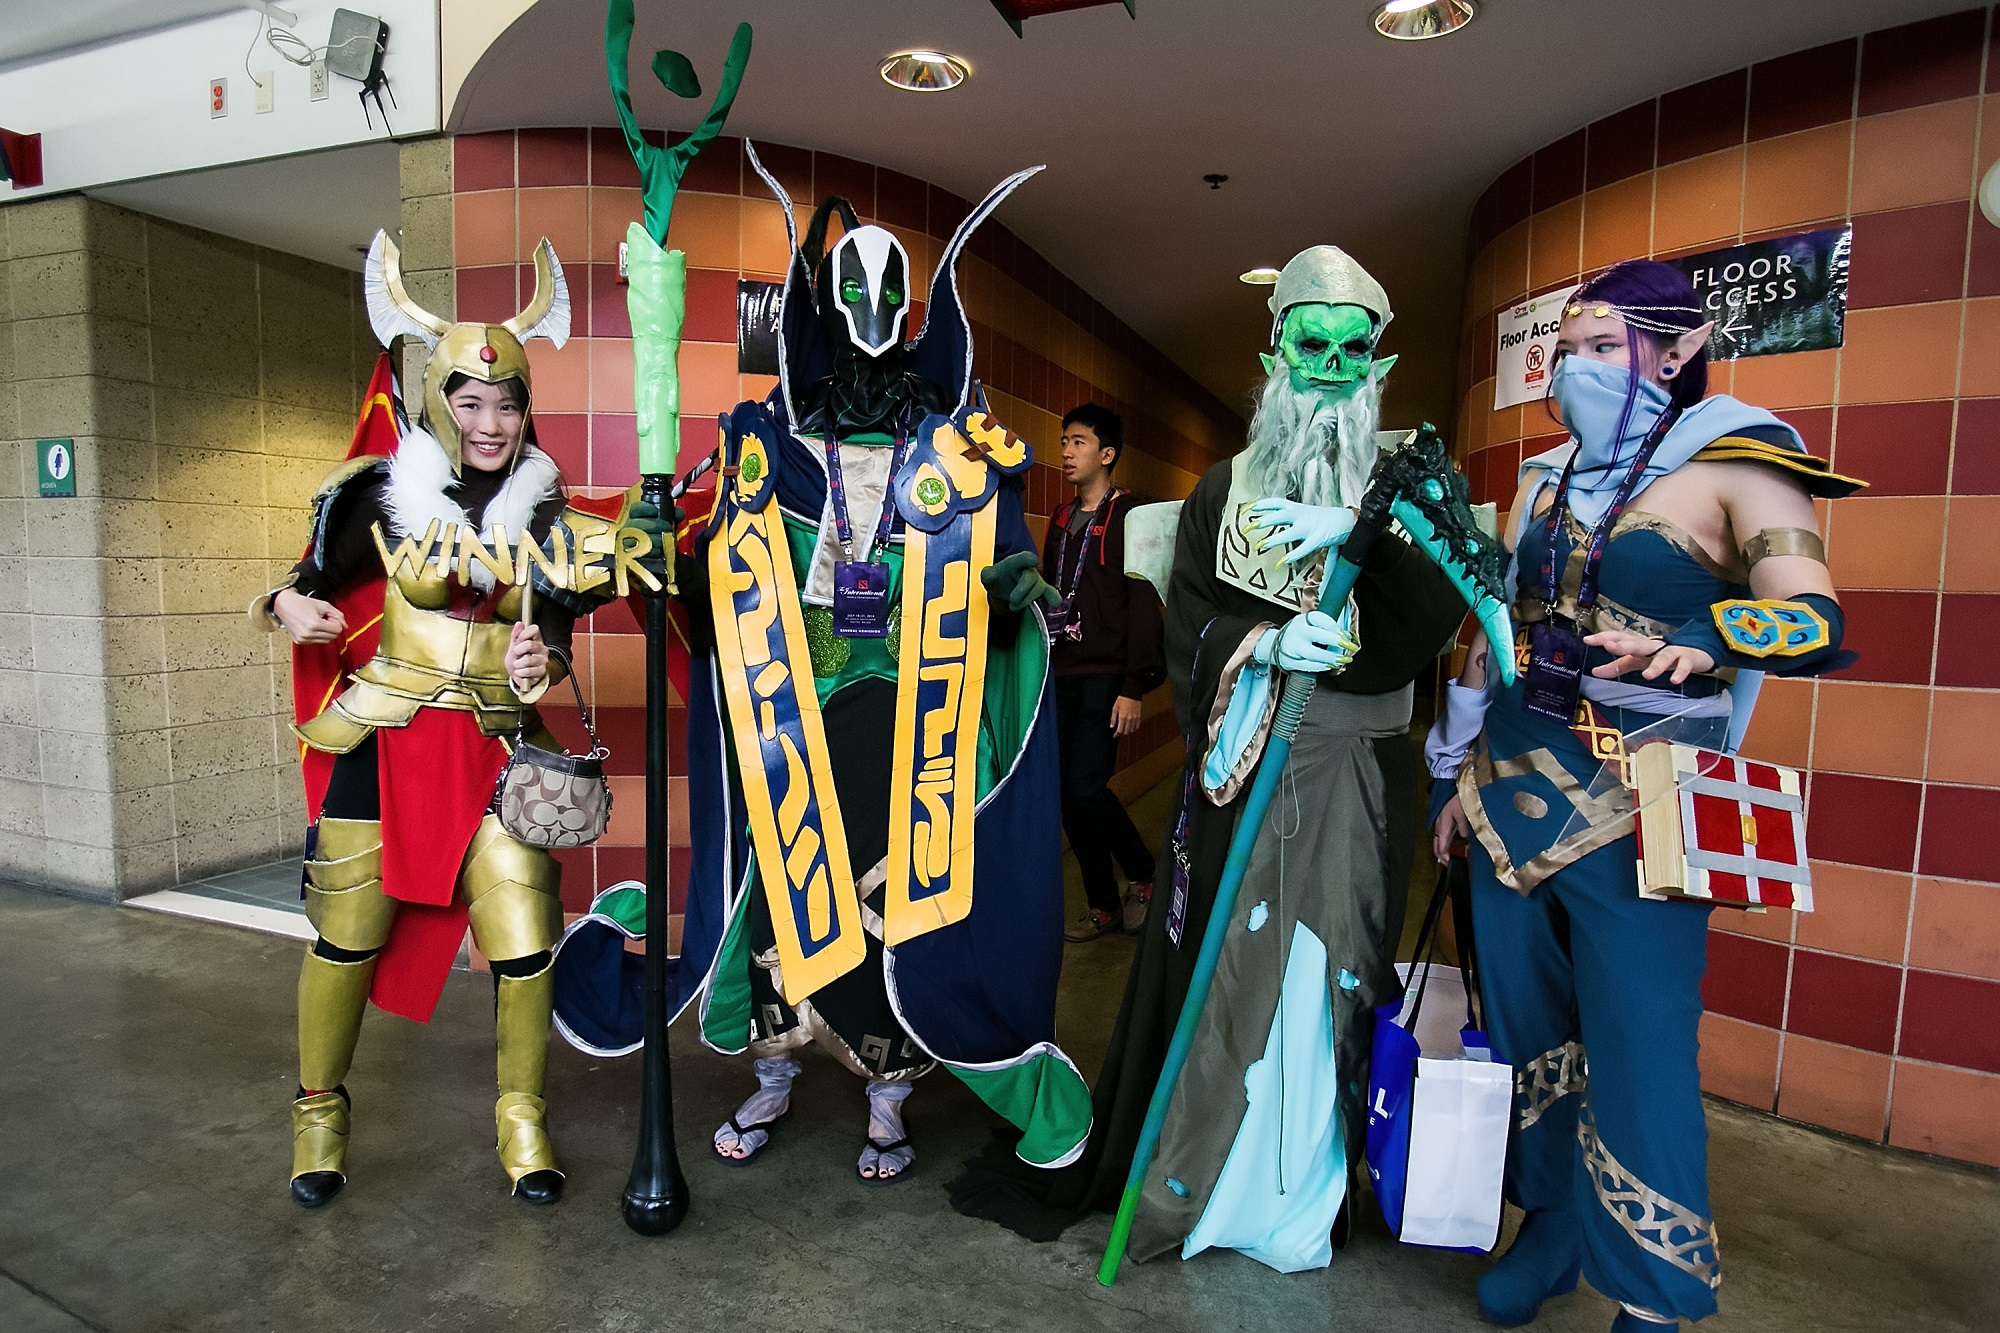 Fans dressed in cosplay pose for a photo at The International Dota 2 Championships on July 20, 2014 in Seattle, Washington.